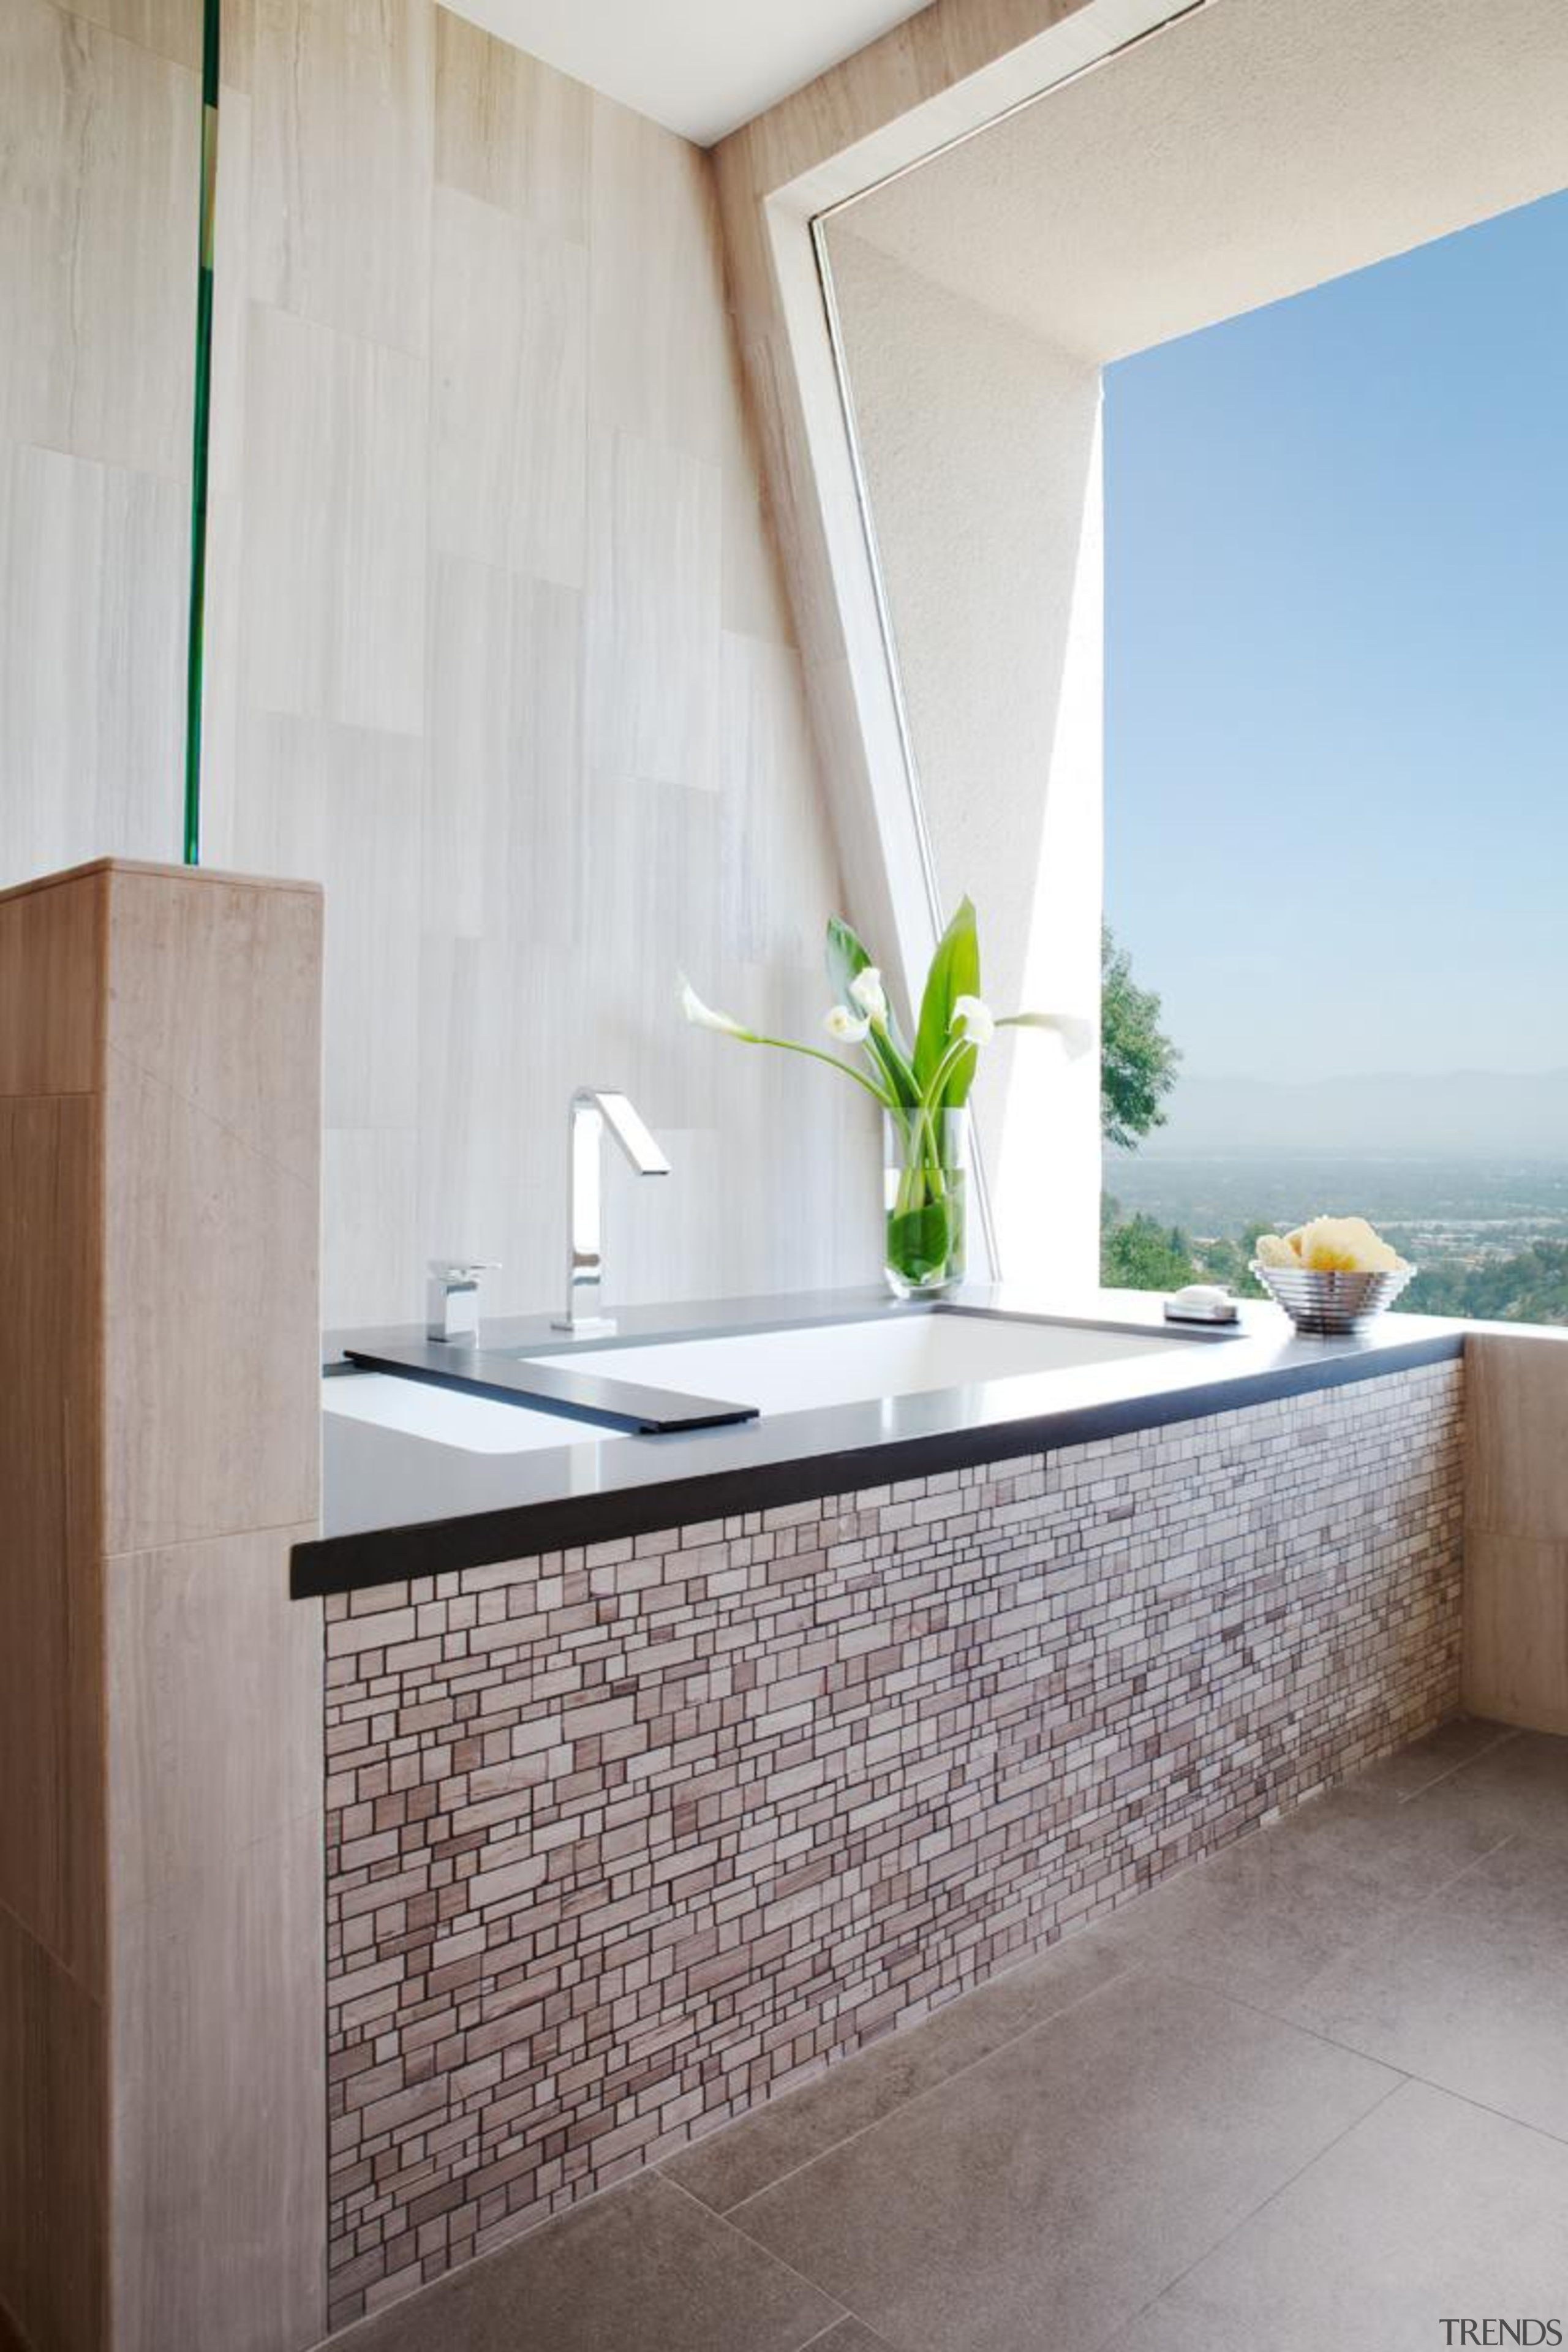 This tub overlooks the entire valley. Great views architecture, bathroom, floor, home, interior design, room, sink, tap, tile, wall, gray, white